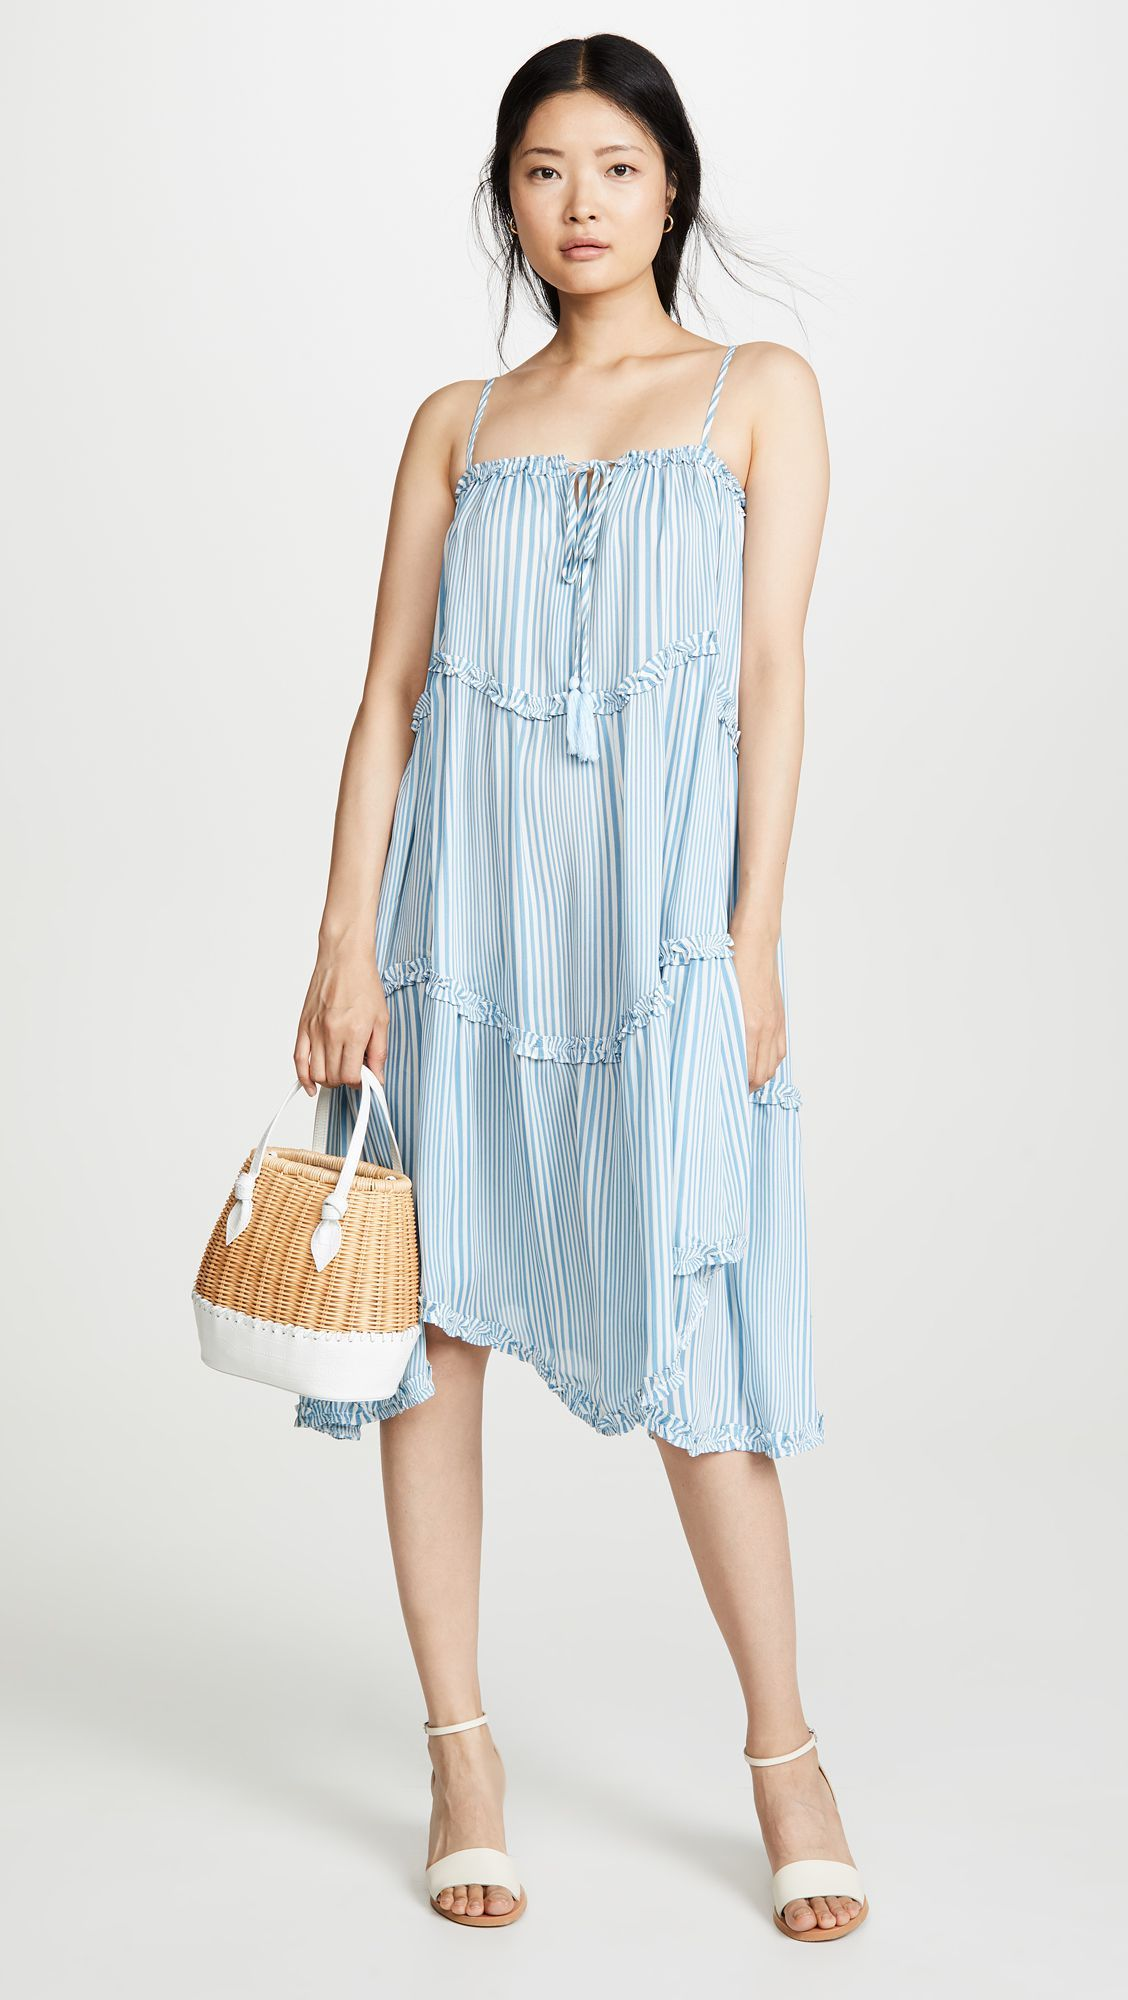 Sky Blue Stripe Dress